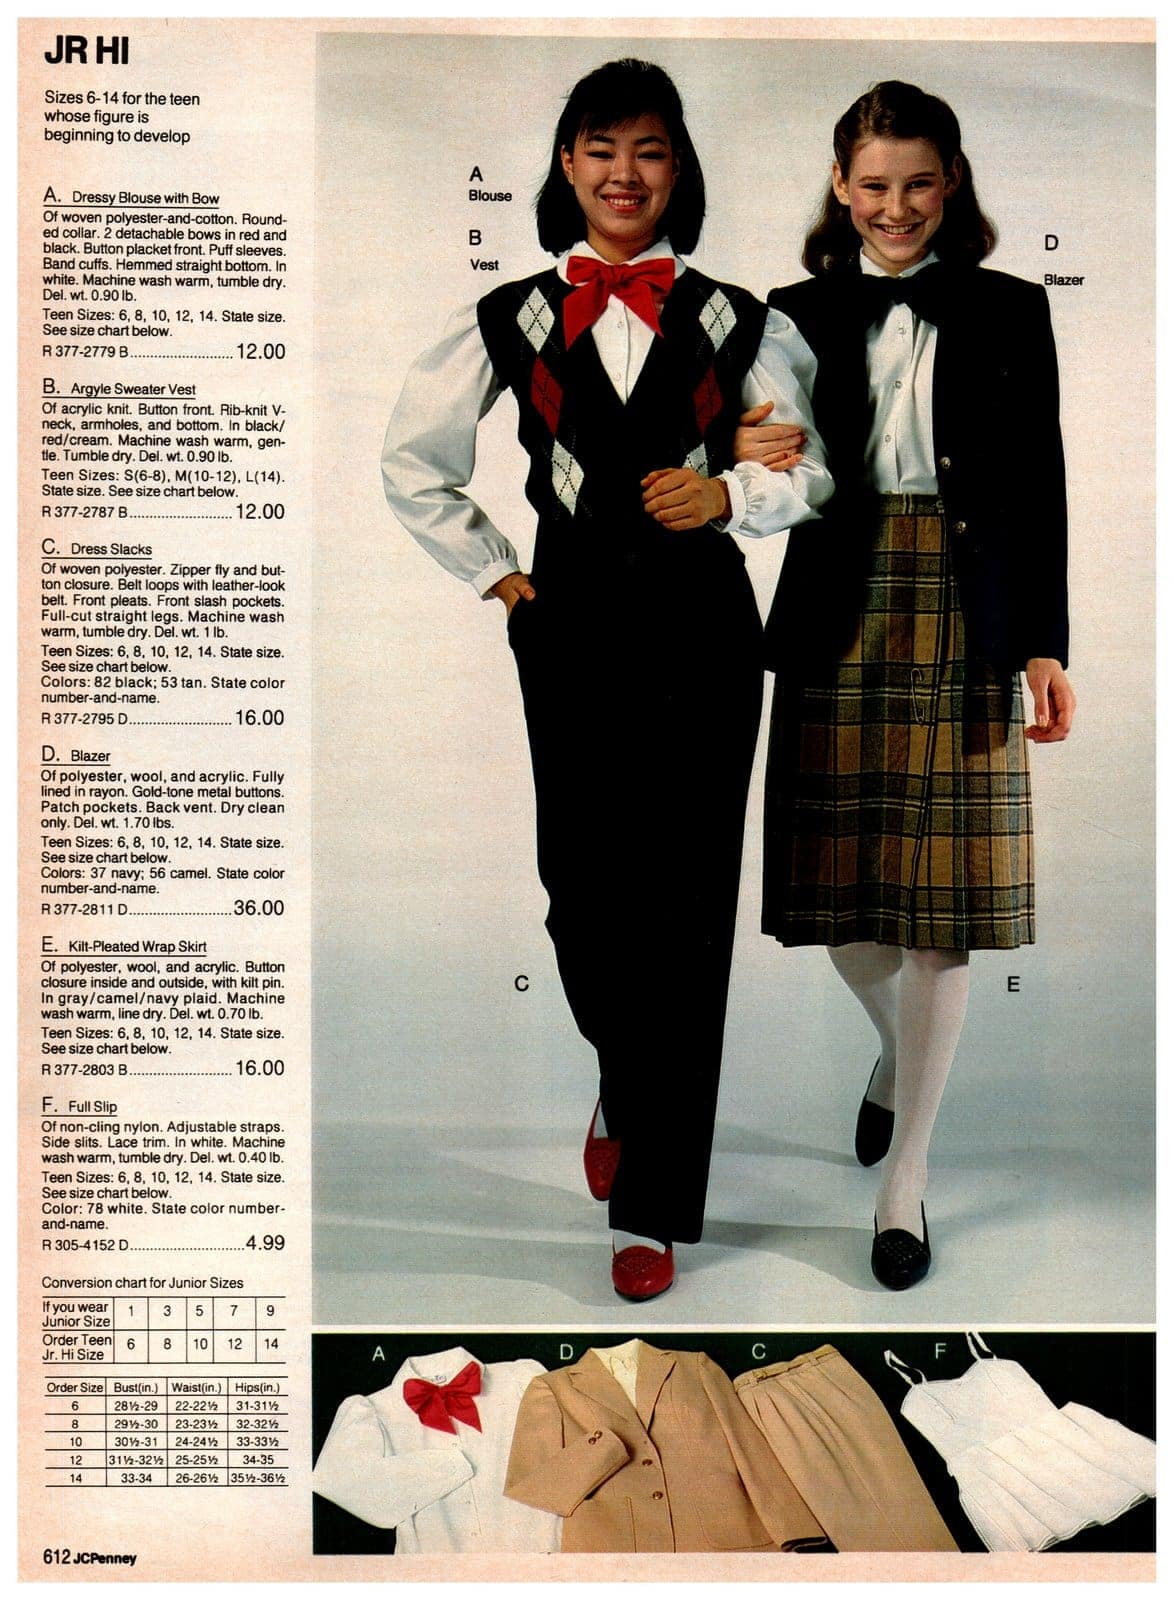 Preppy eighties outfits for girls - sweater, jackets and slacks